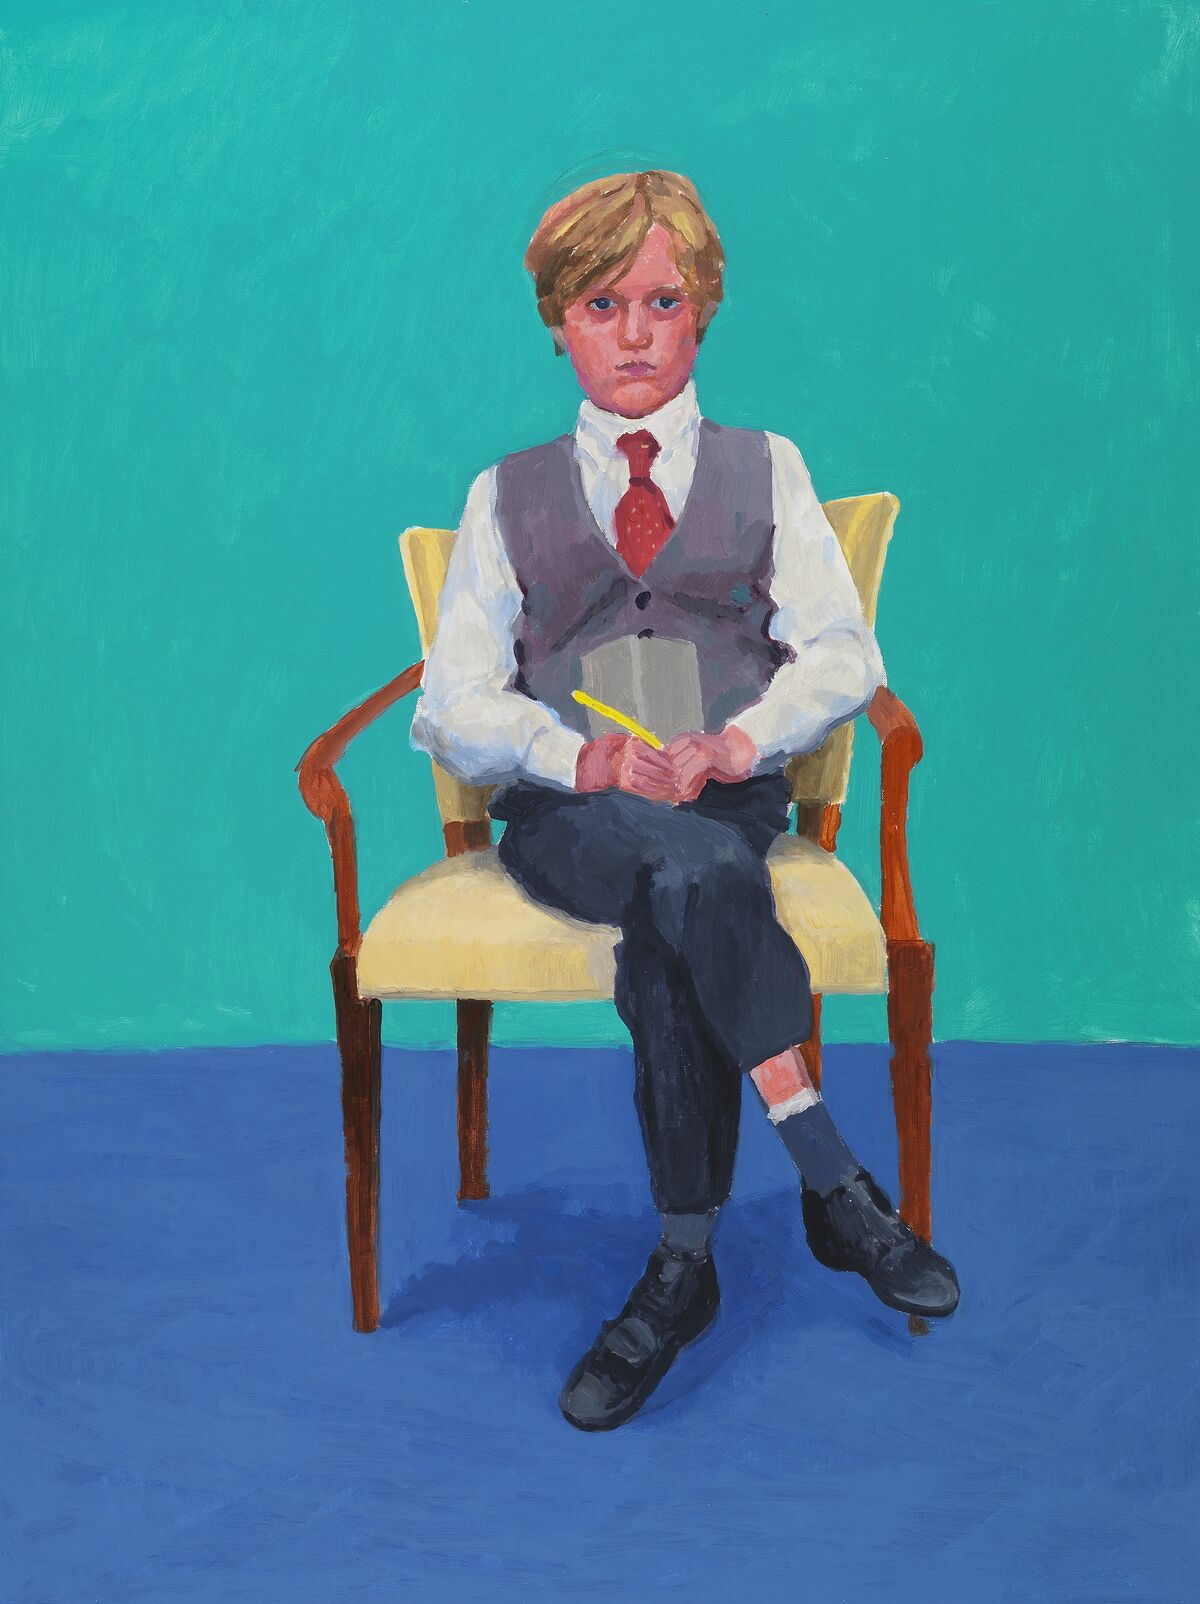 """David Hockney, Rufus Hale, 23rd, 24th, 25th November 2015, 2015, from """"82 Portraits and 1 Still-life"""" © David Hockney. Photo by Richard Schmidt. Courtesy of the Los Angeles Museum of Art."""